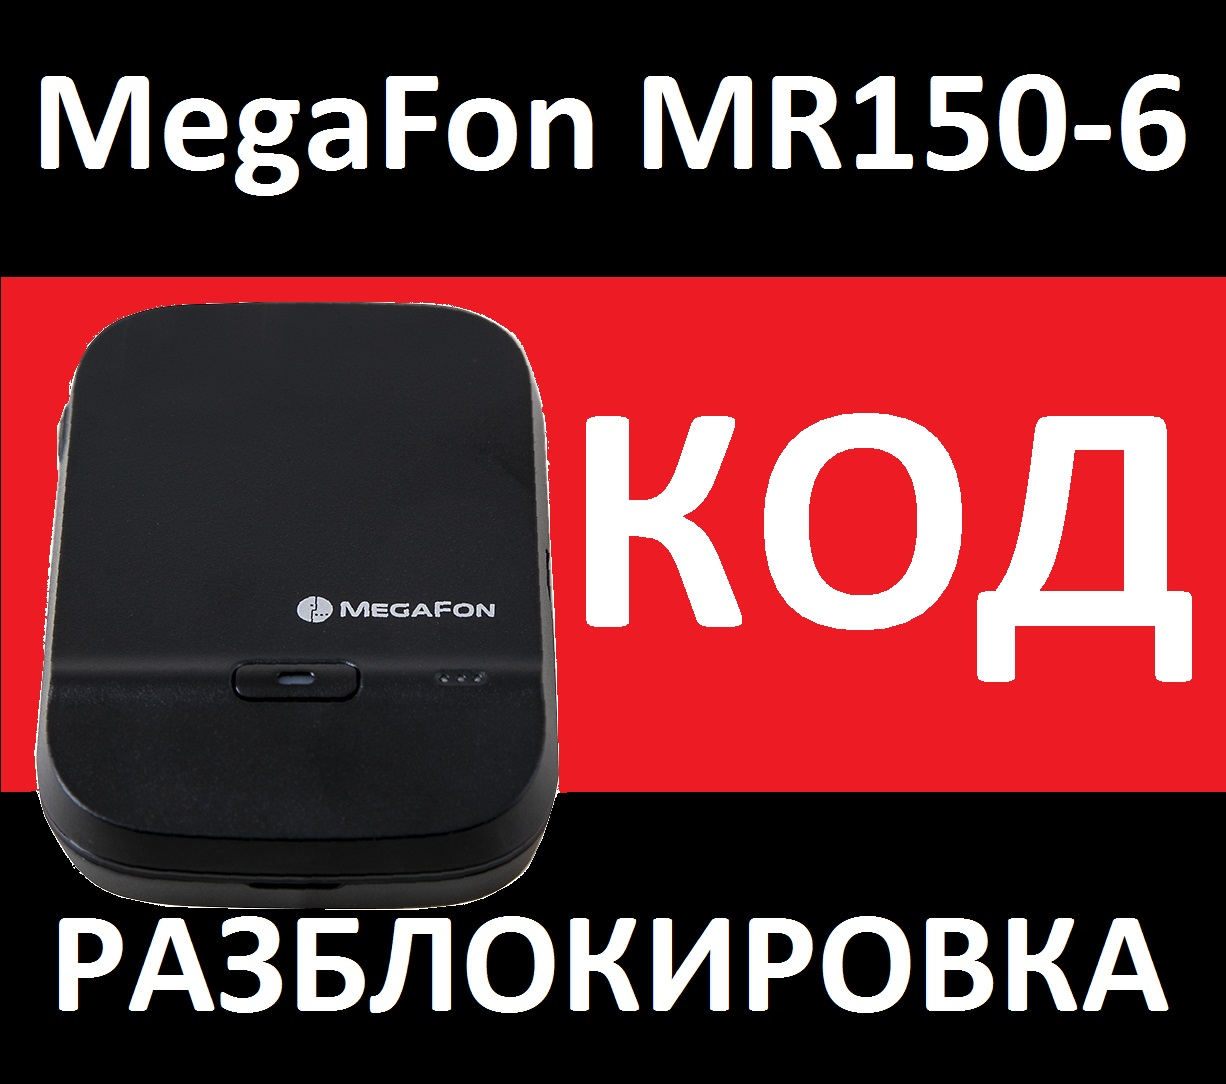 4G + Wi-Fi router MR150-6 Megafon network unlocking. Co